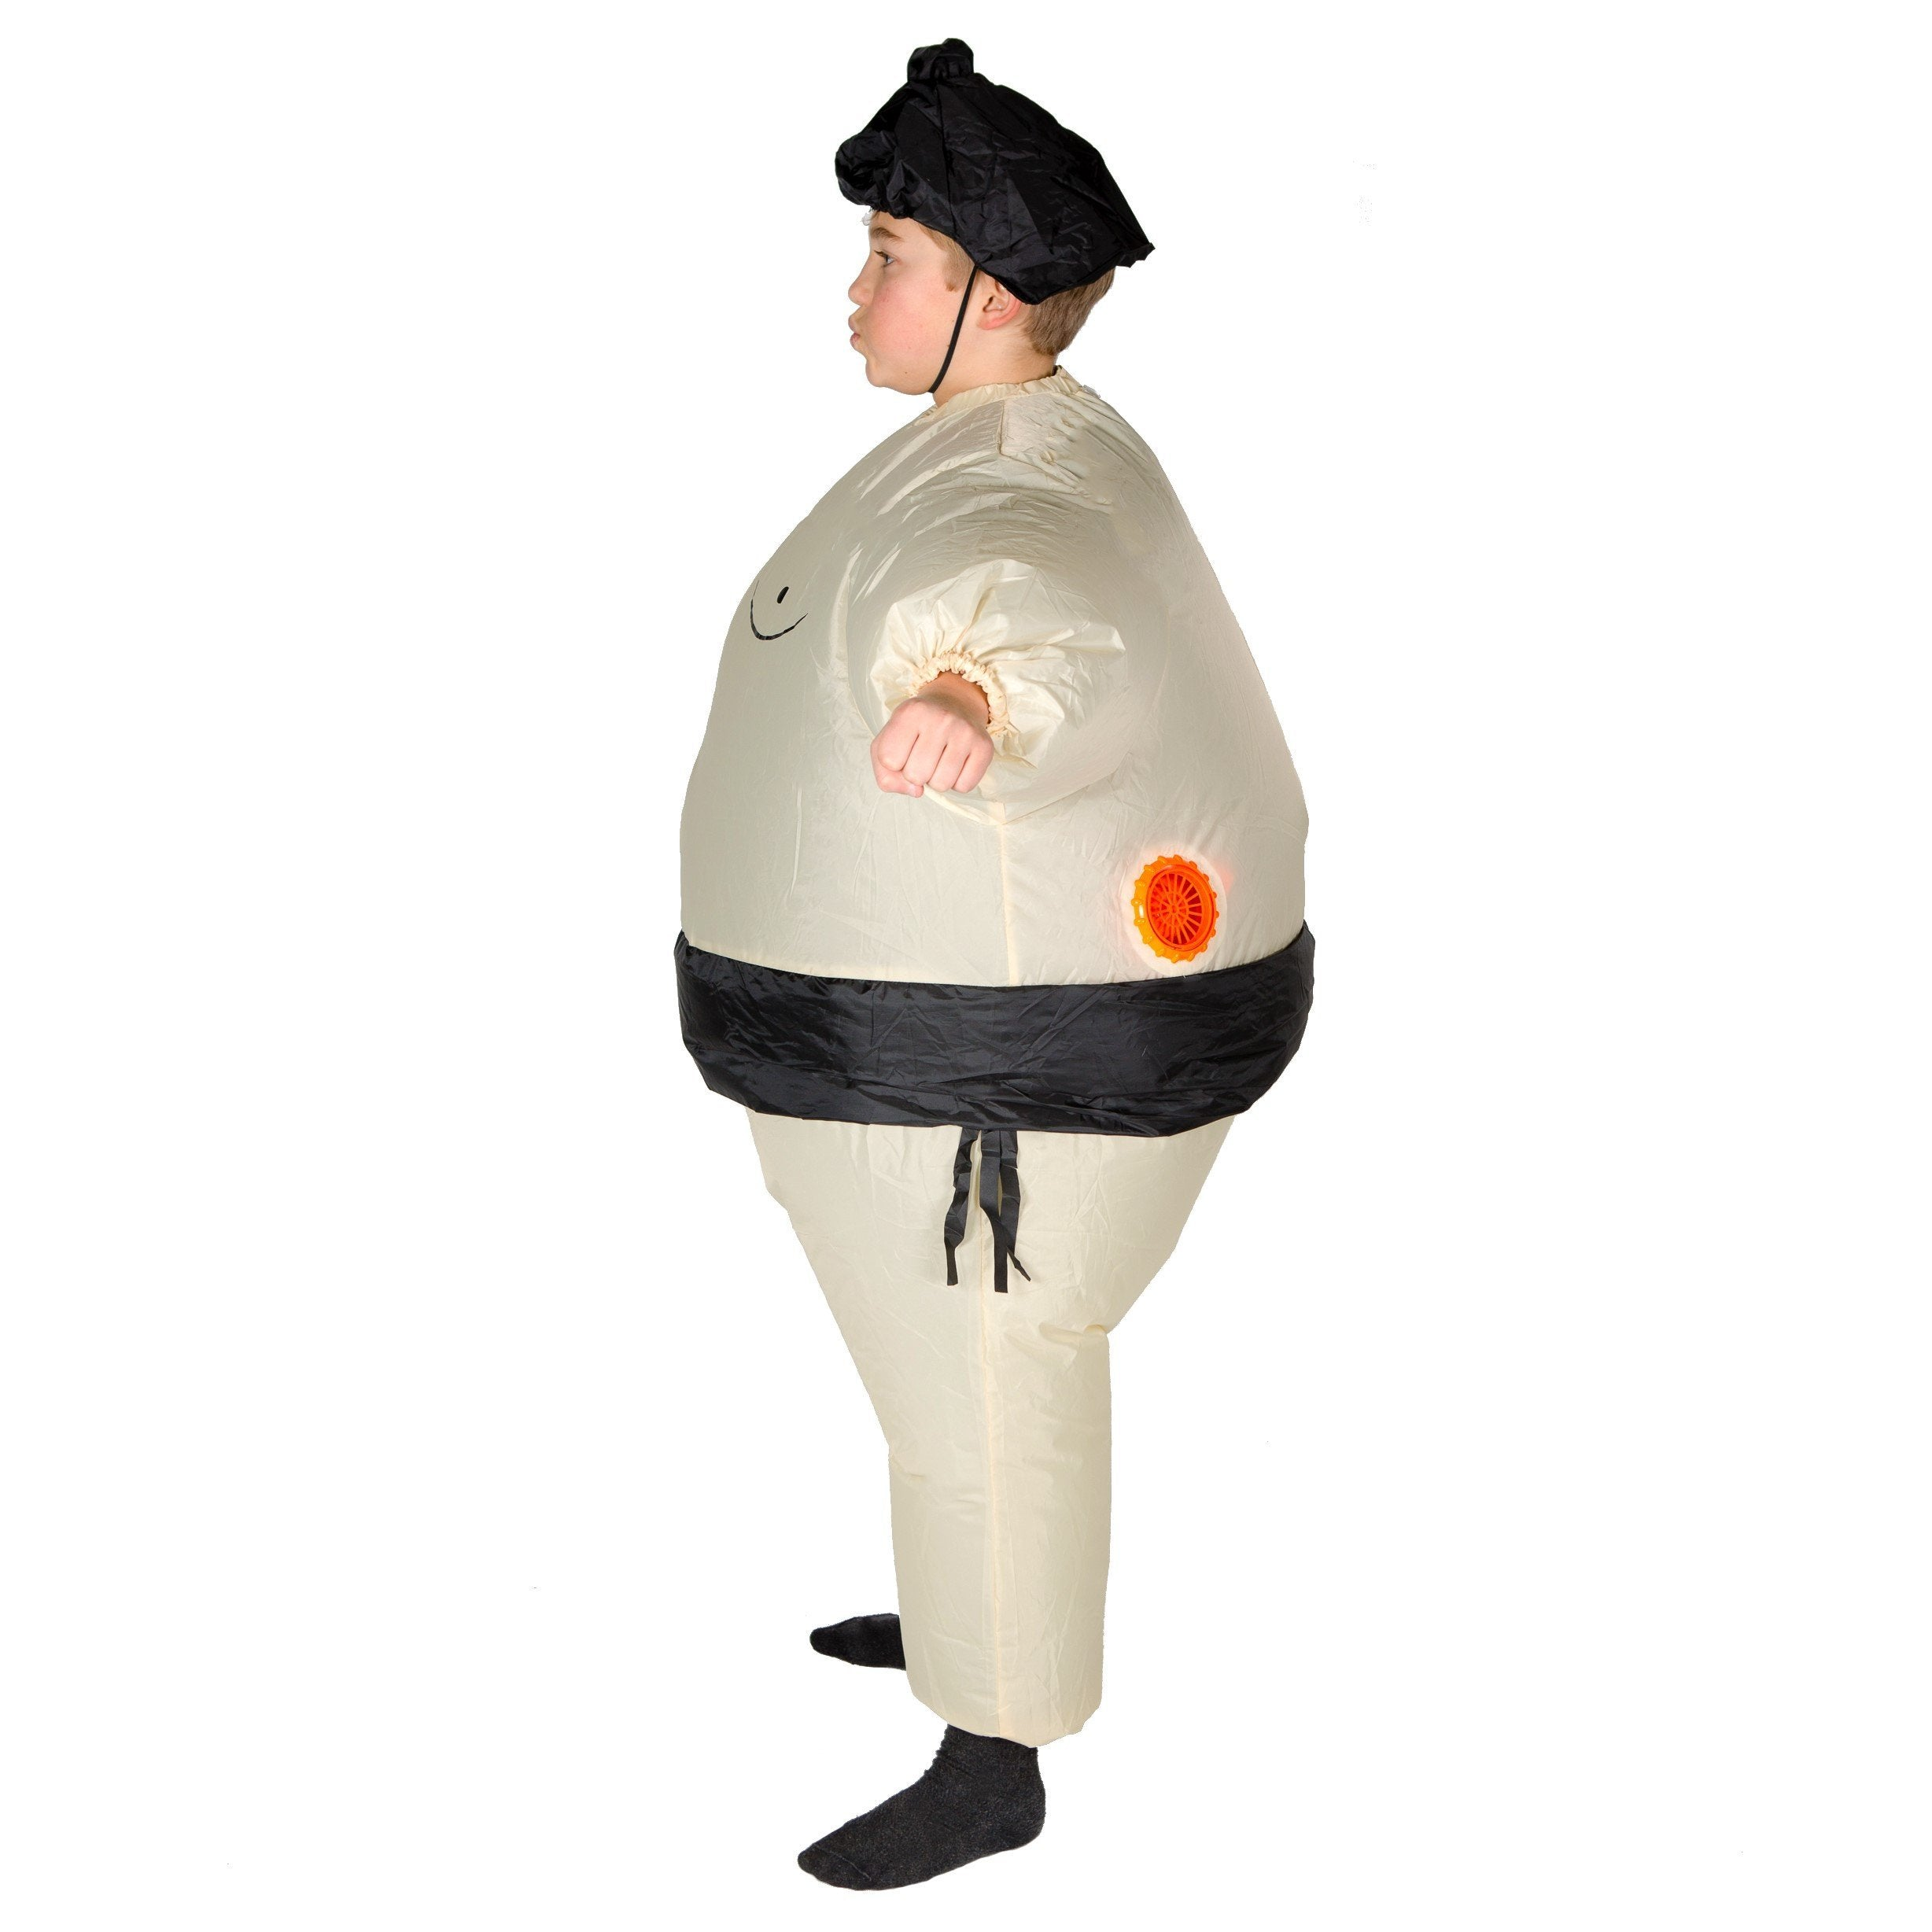 Bodysocks - Kids Inflatable Sumo Wrestler Costume